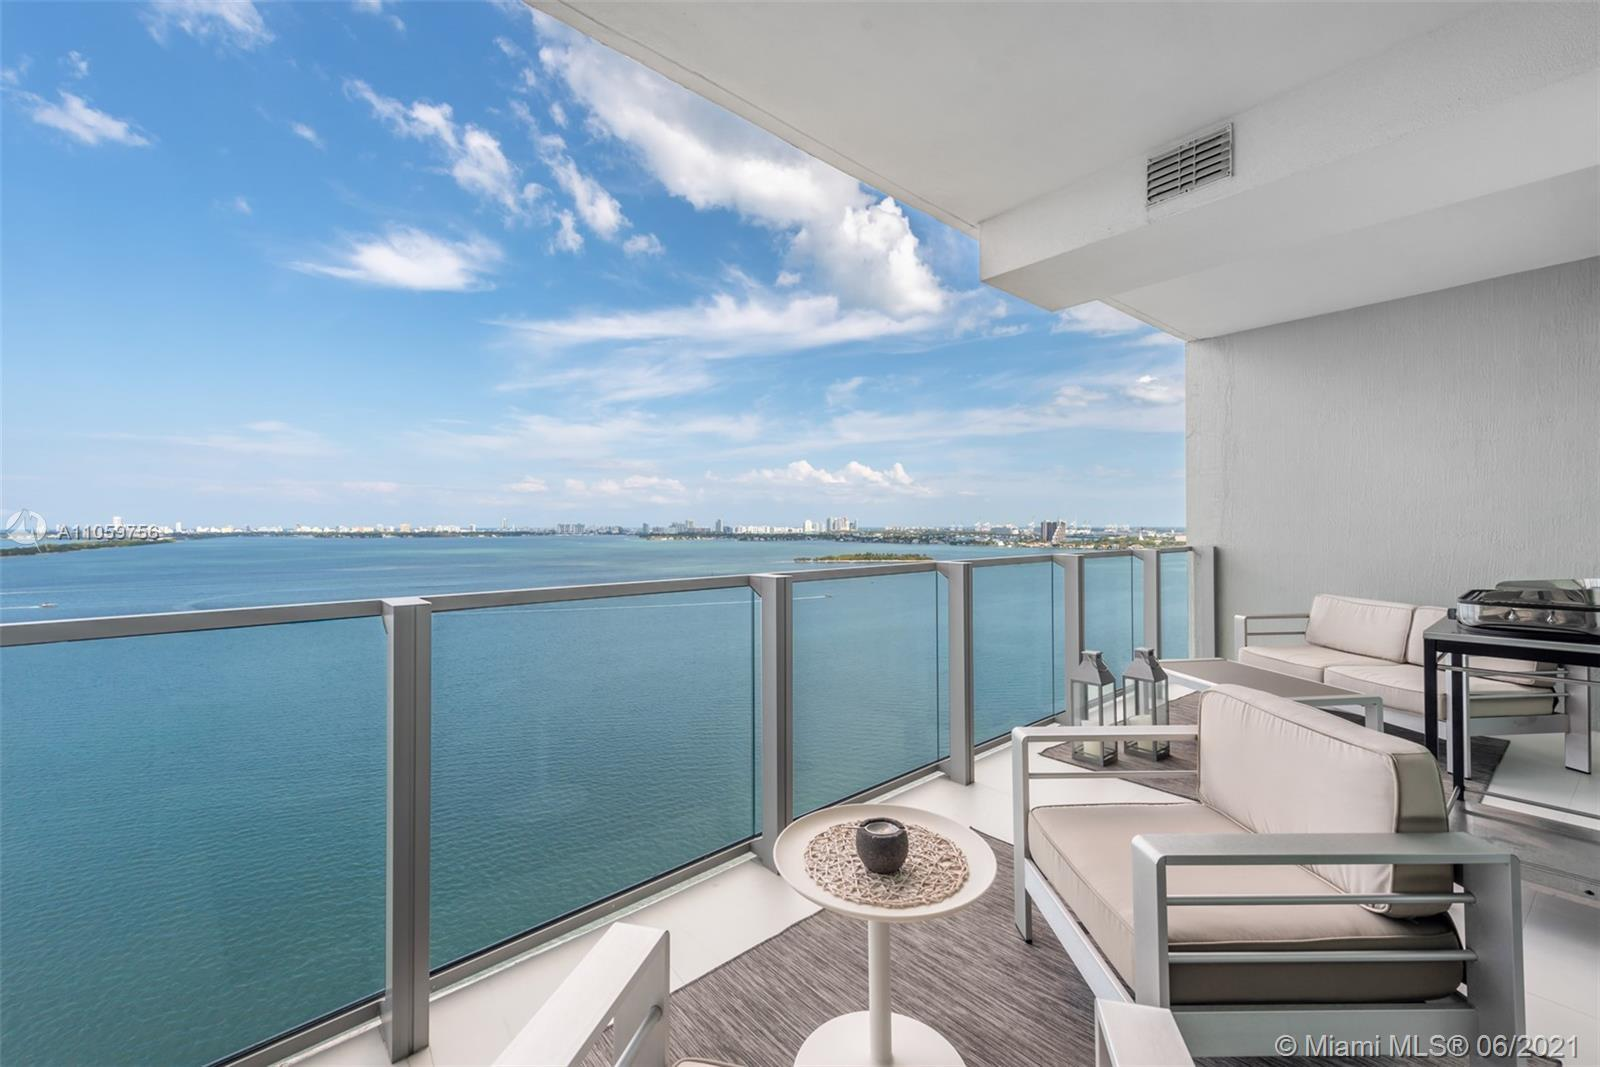 Spectacular high floor 2 bedrooms plus den, 3 baths with unobstructed views of the Biscayne Bay, Mia